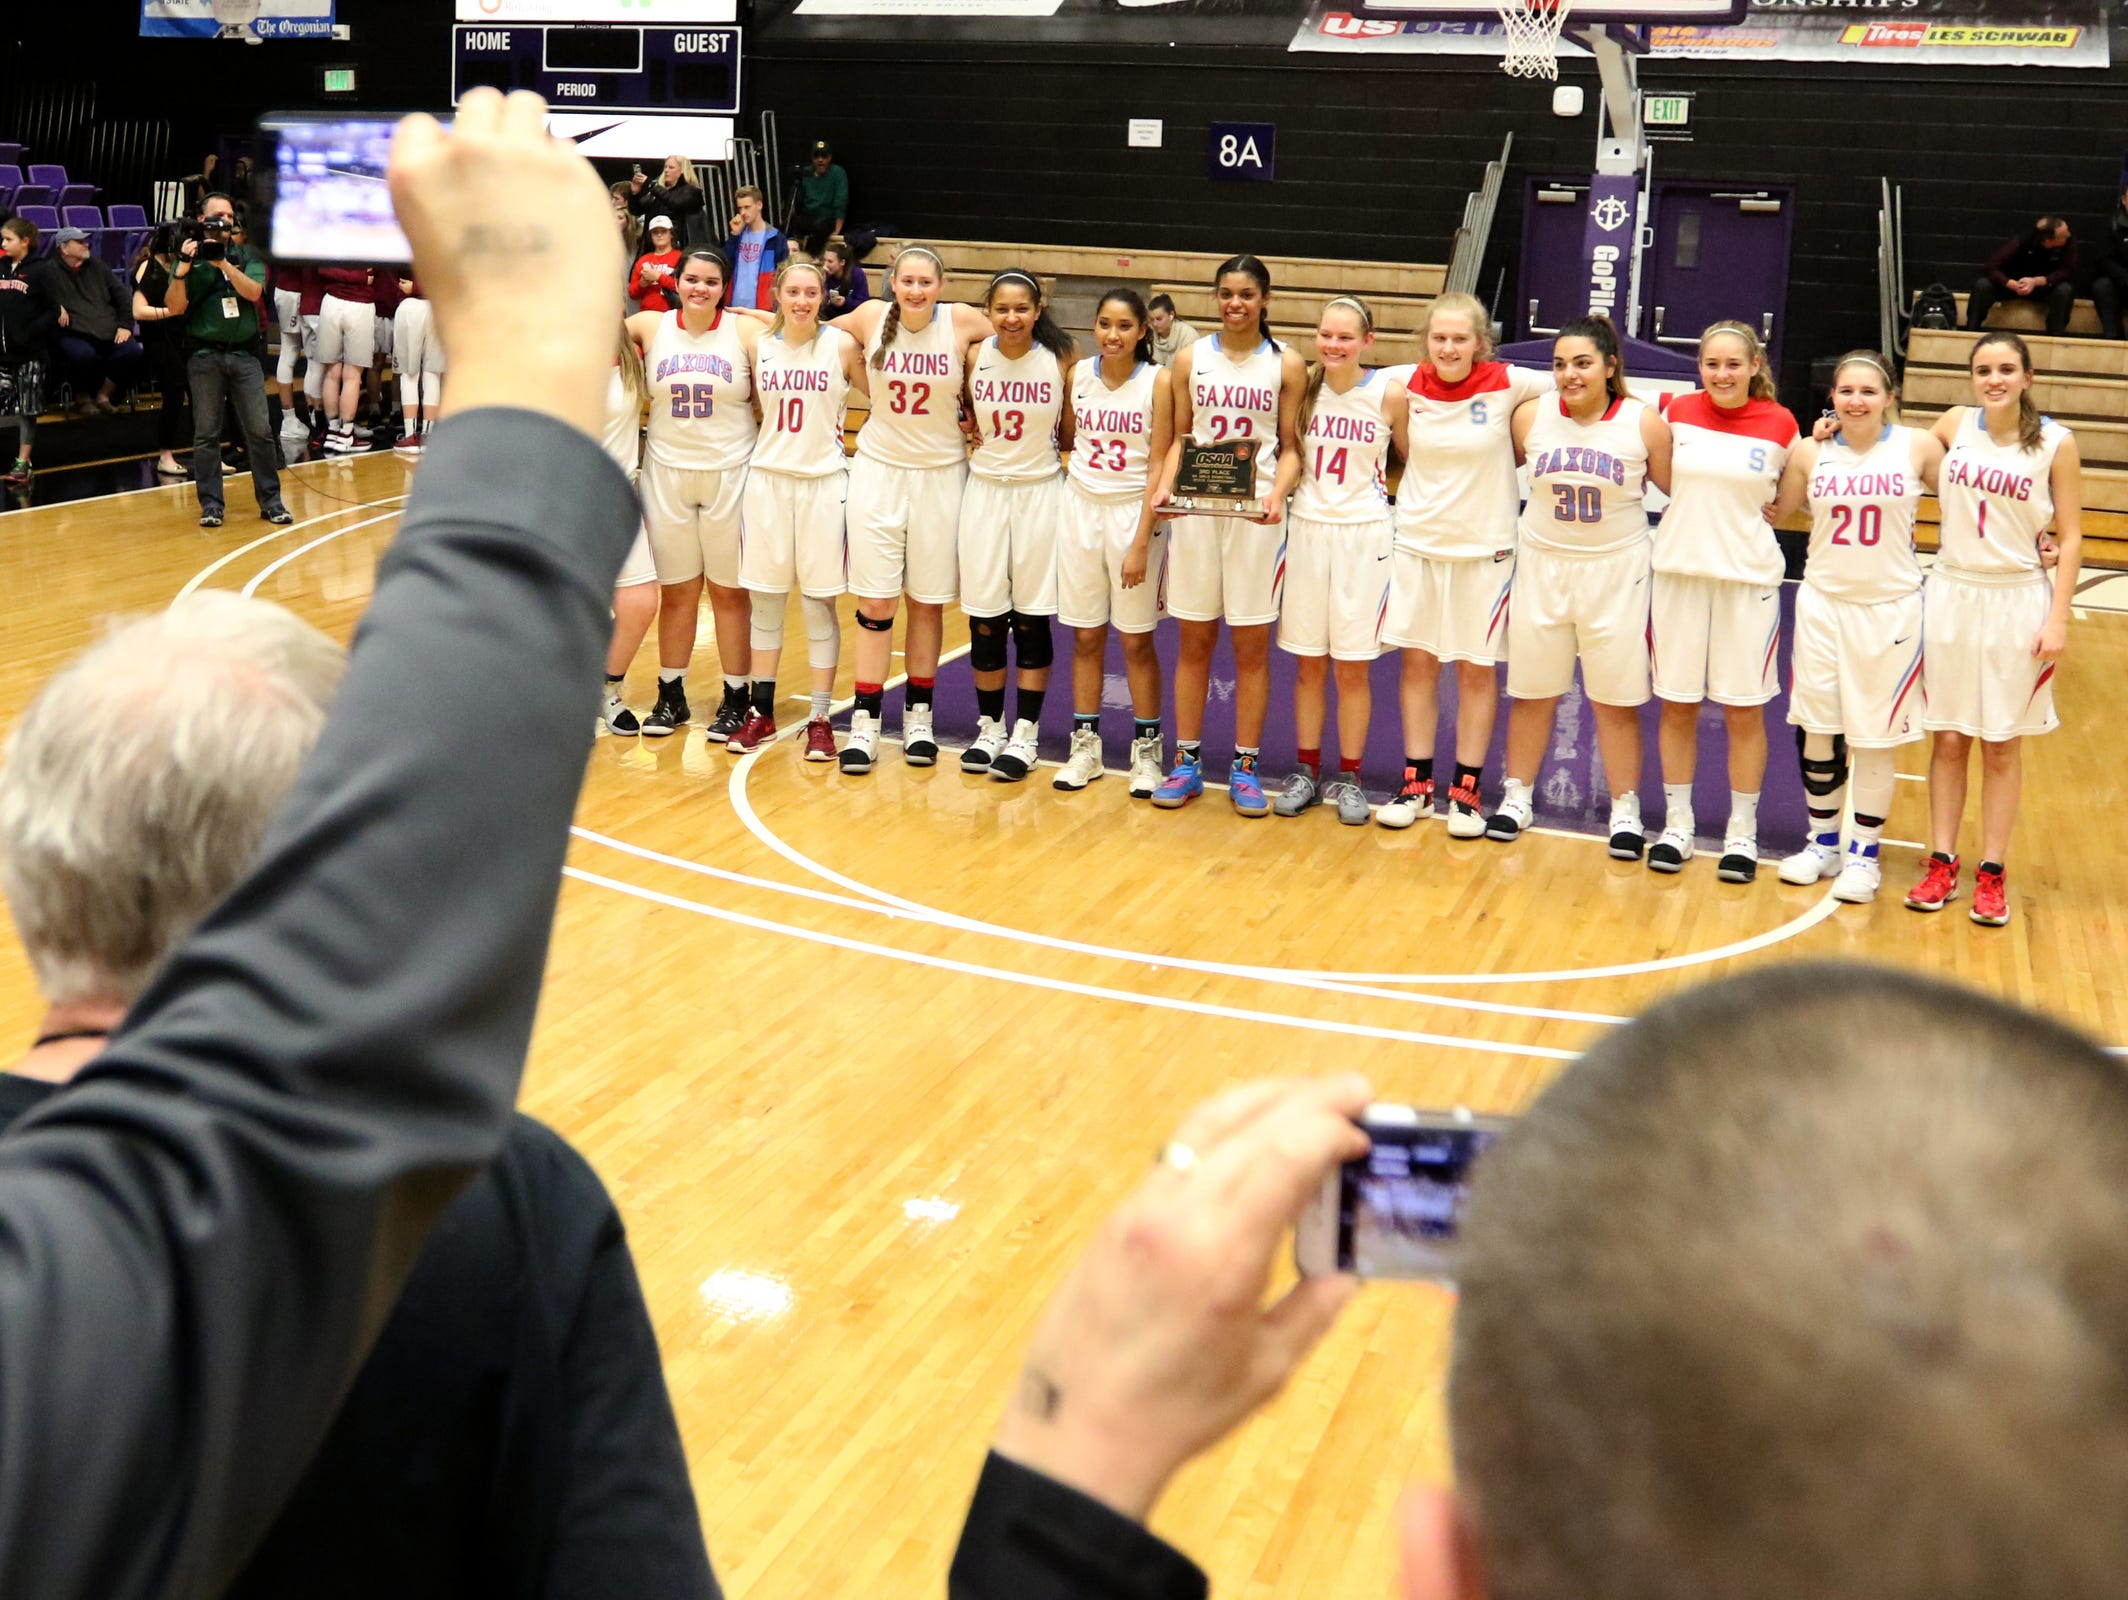 South Salem stands with their trophy following the Grant vs. South Salem girl's basketball game to determine third place in the OSAA Class 6A State Championships at the University of Portland on Saturday, March 11, 2017. South Salem won the game 58-53.